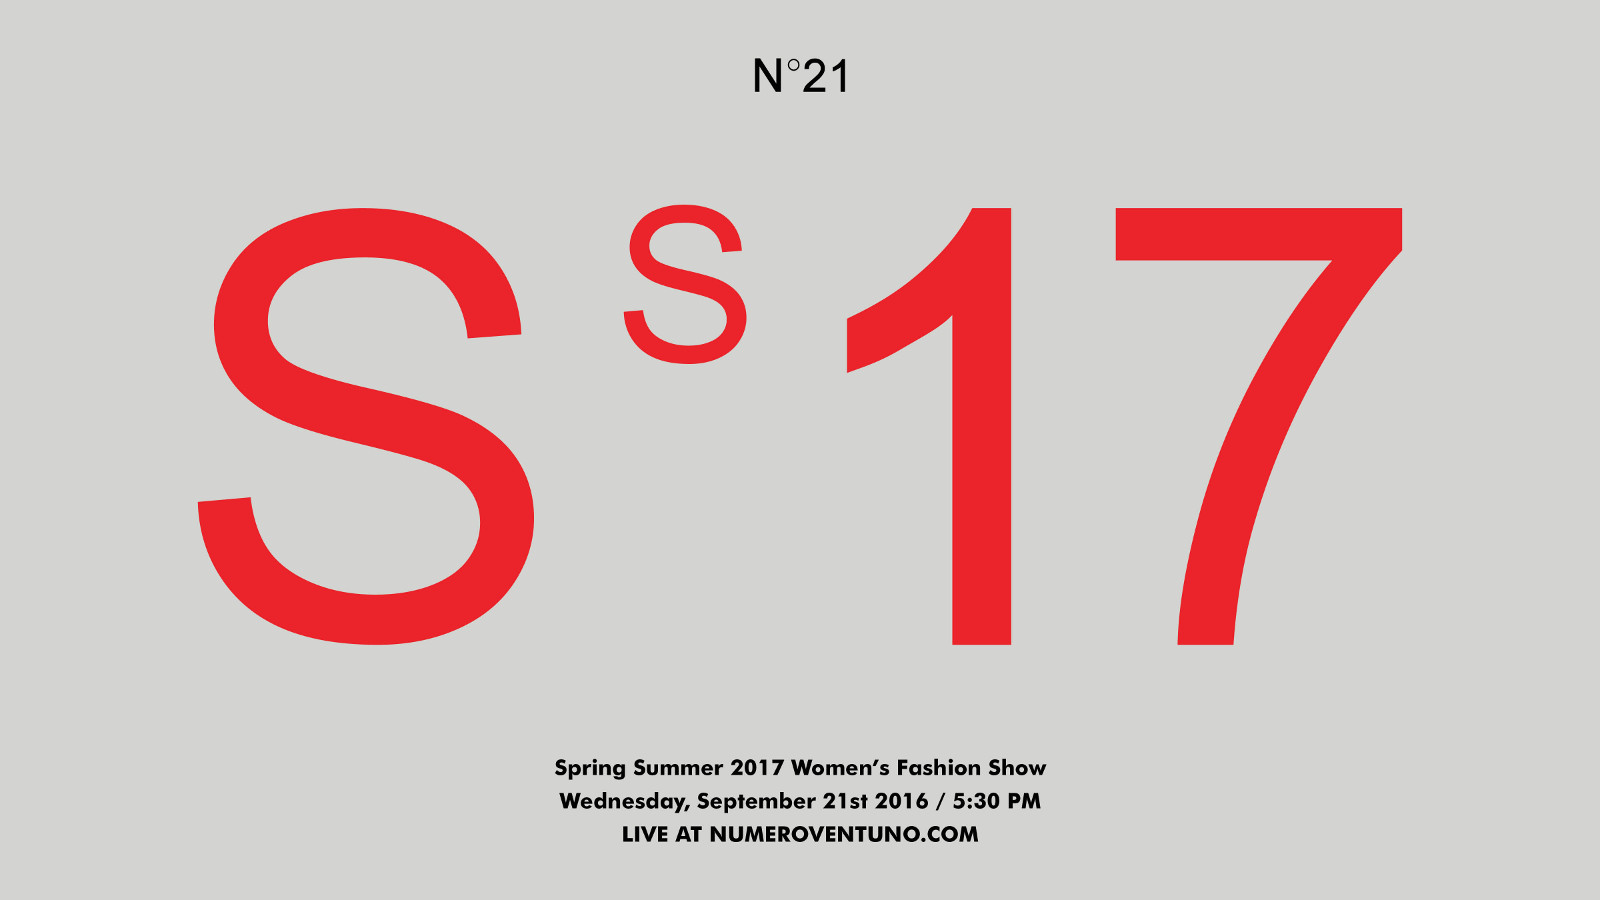 N°21 Spring Summer 2017 Women's Fashion Show Live Streaming Milan